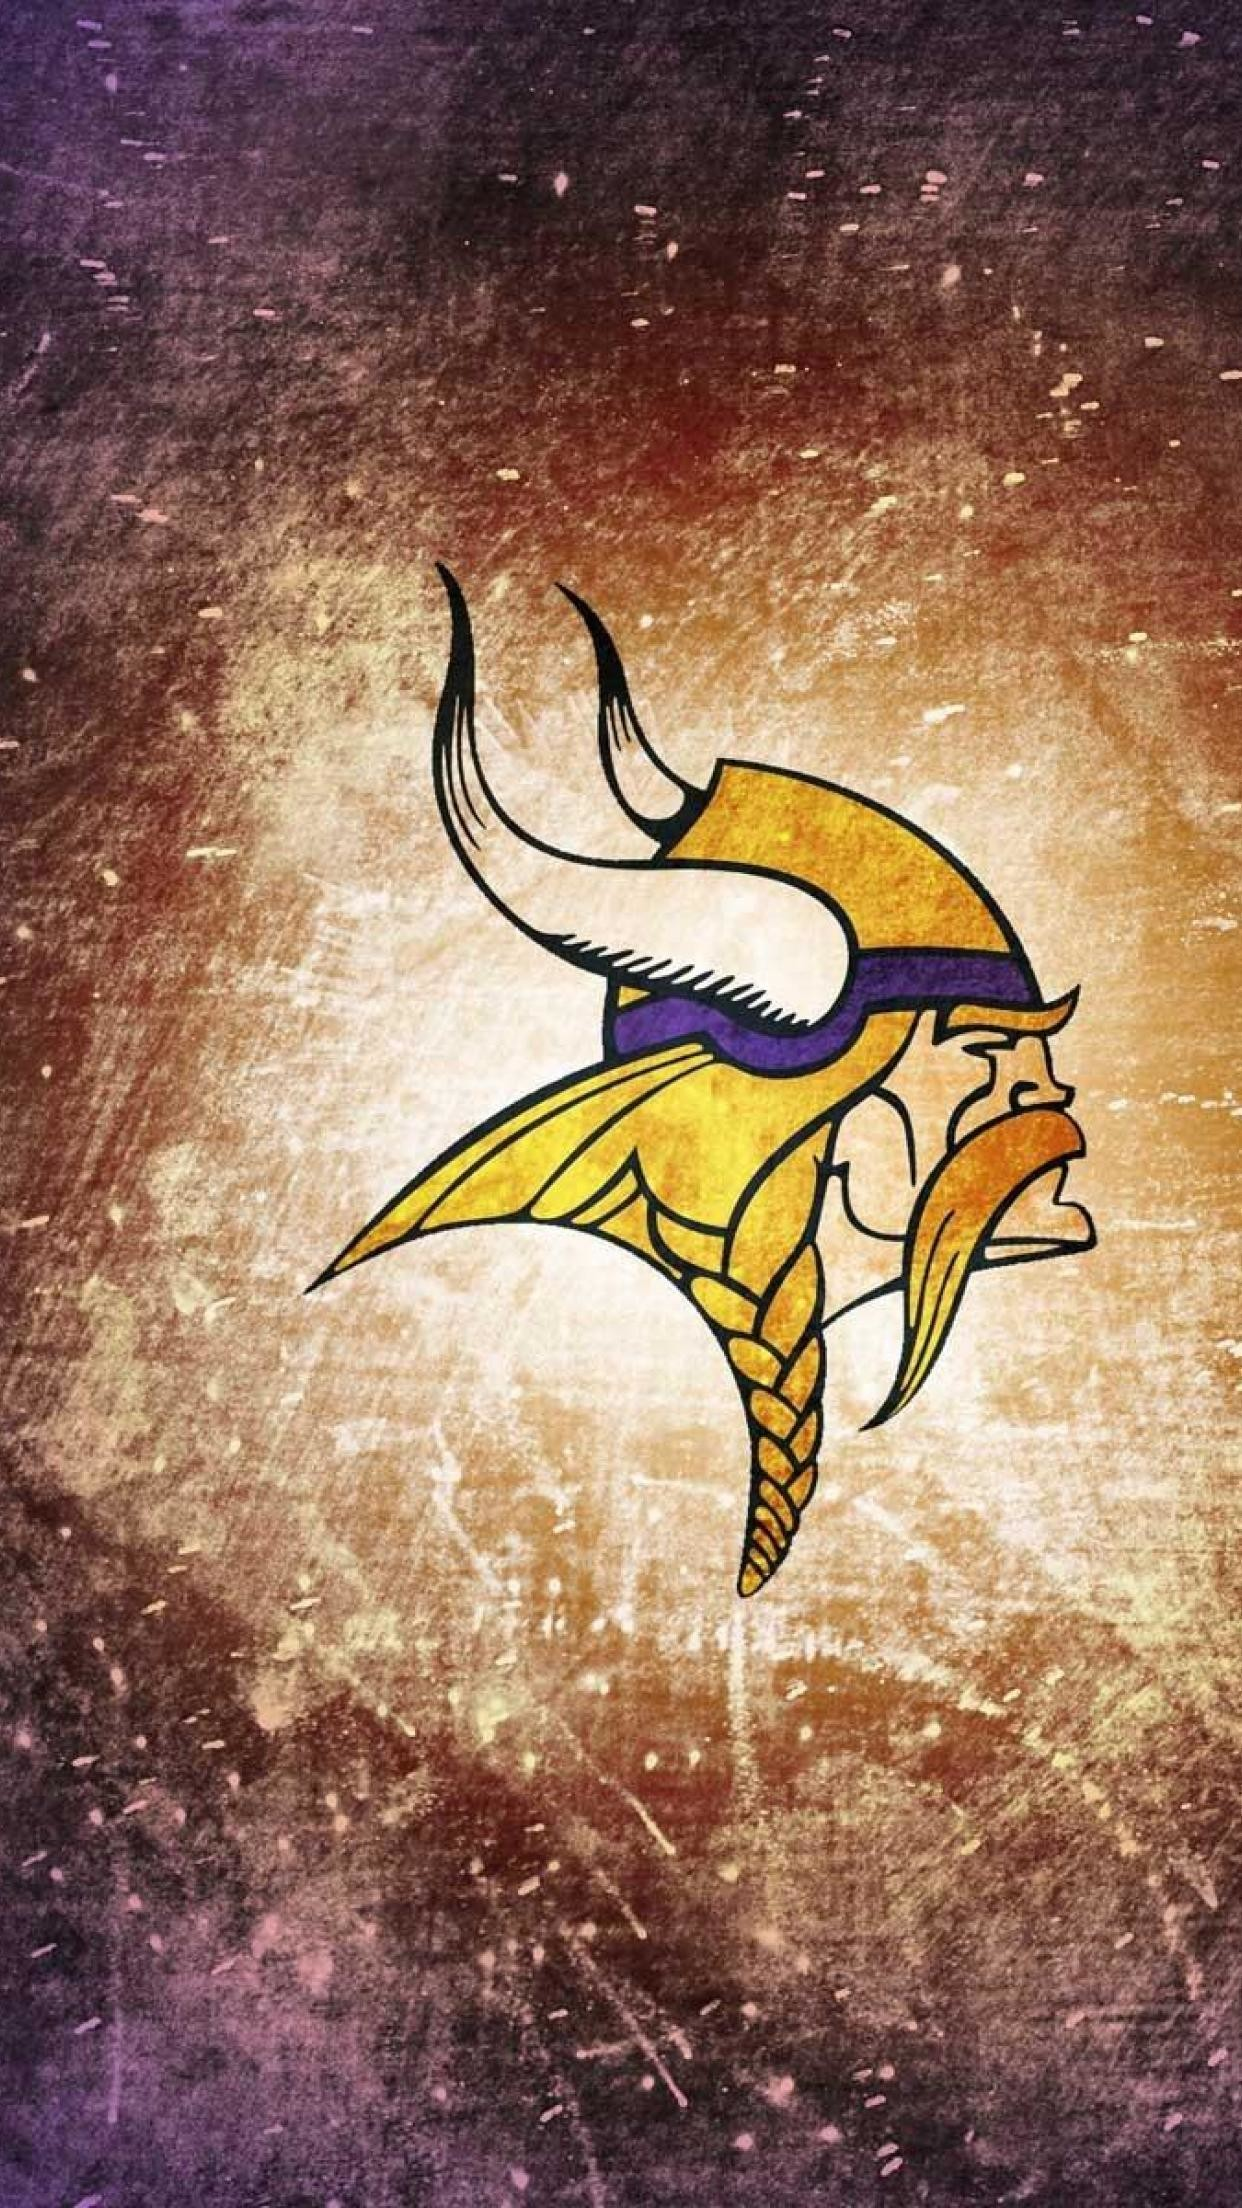 2880x1920 Live Broadcast Between Miami Dolphins Vs Minnesota Vikings On Thursday August 31 2017 At 800 PM Et With The Name Of USA Football Competition